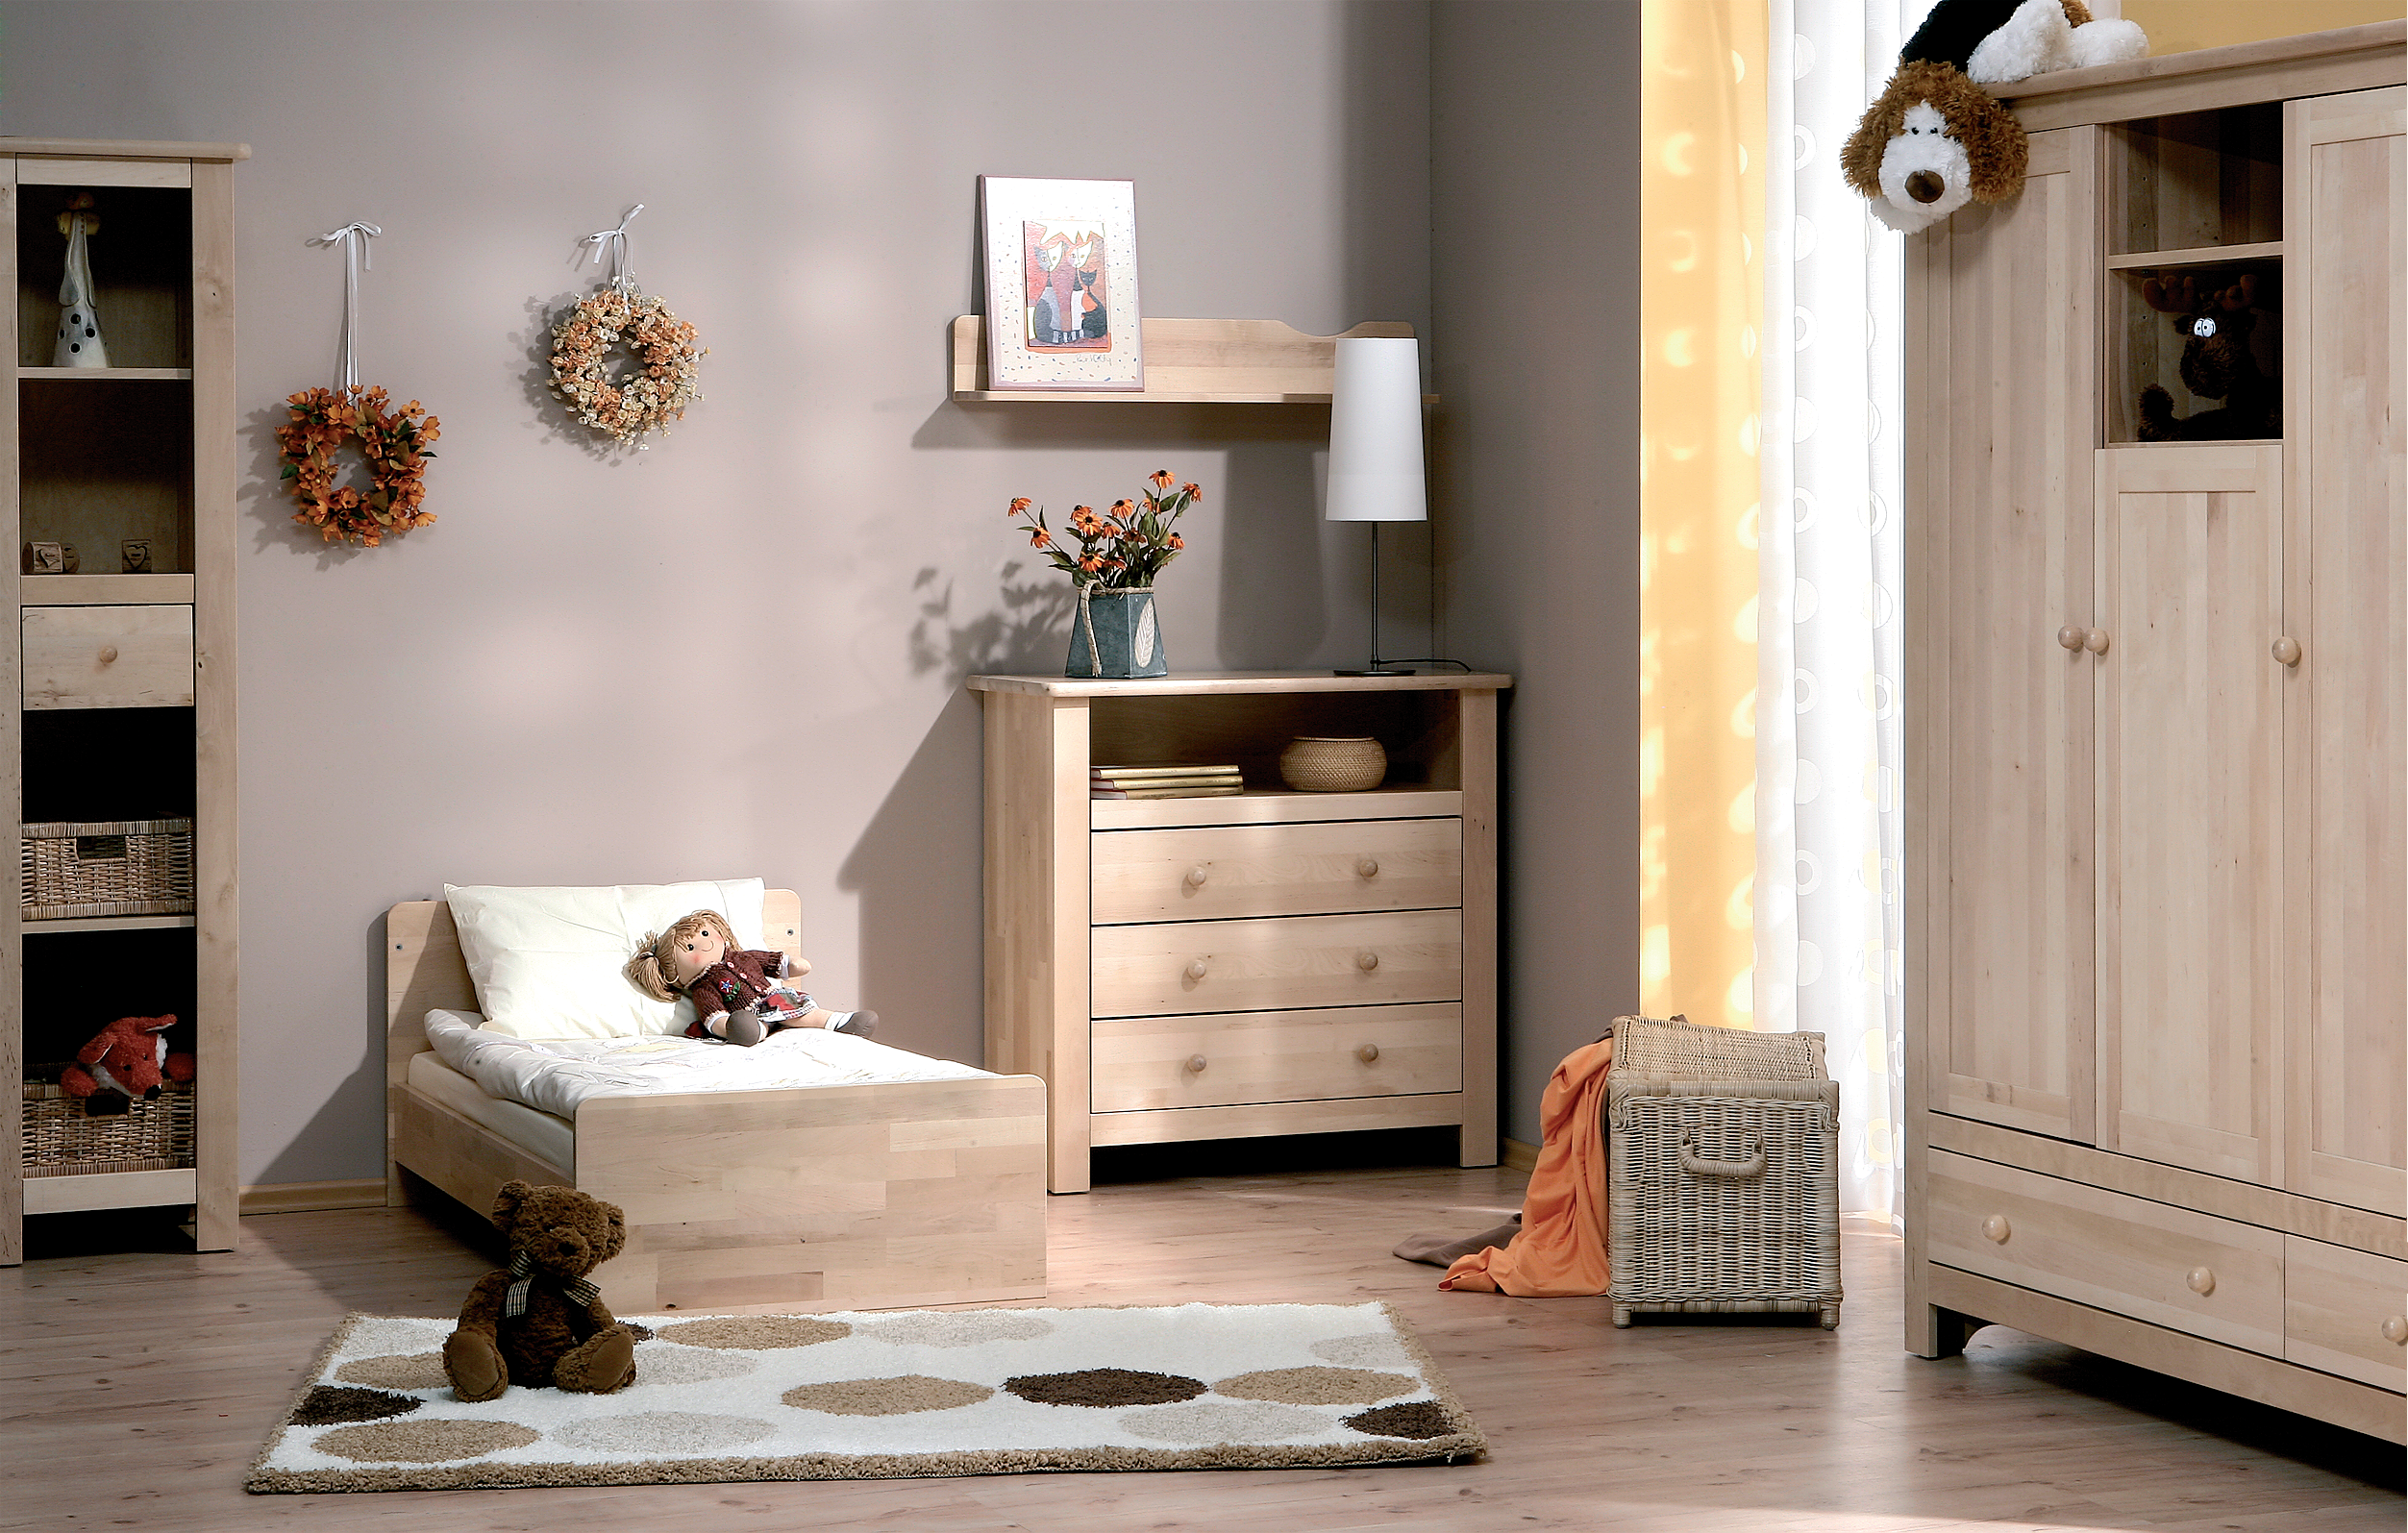 organiser chambre petite fille avec des id es int ressantes pour la conception de. Black Bedroom Furniture Sets. Home Design Ideas